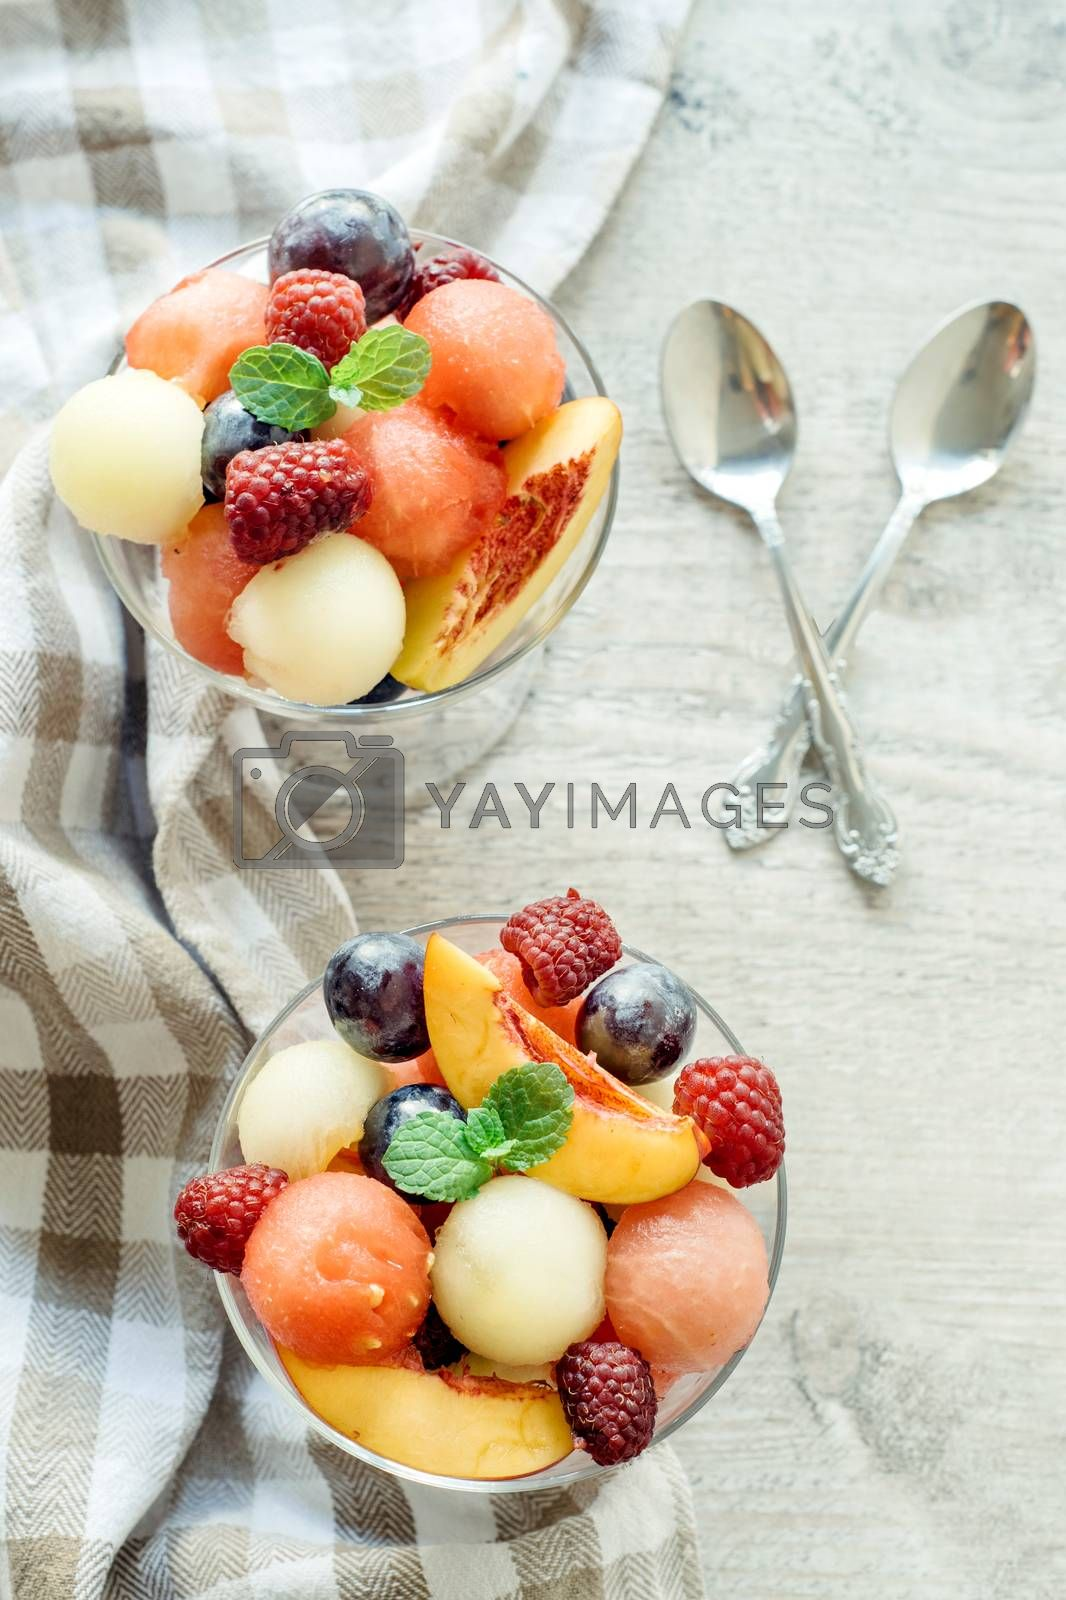 Fruit salads served in glass,selective focus